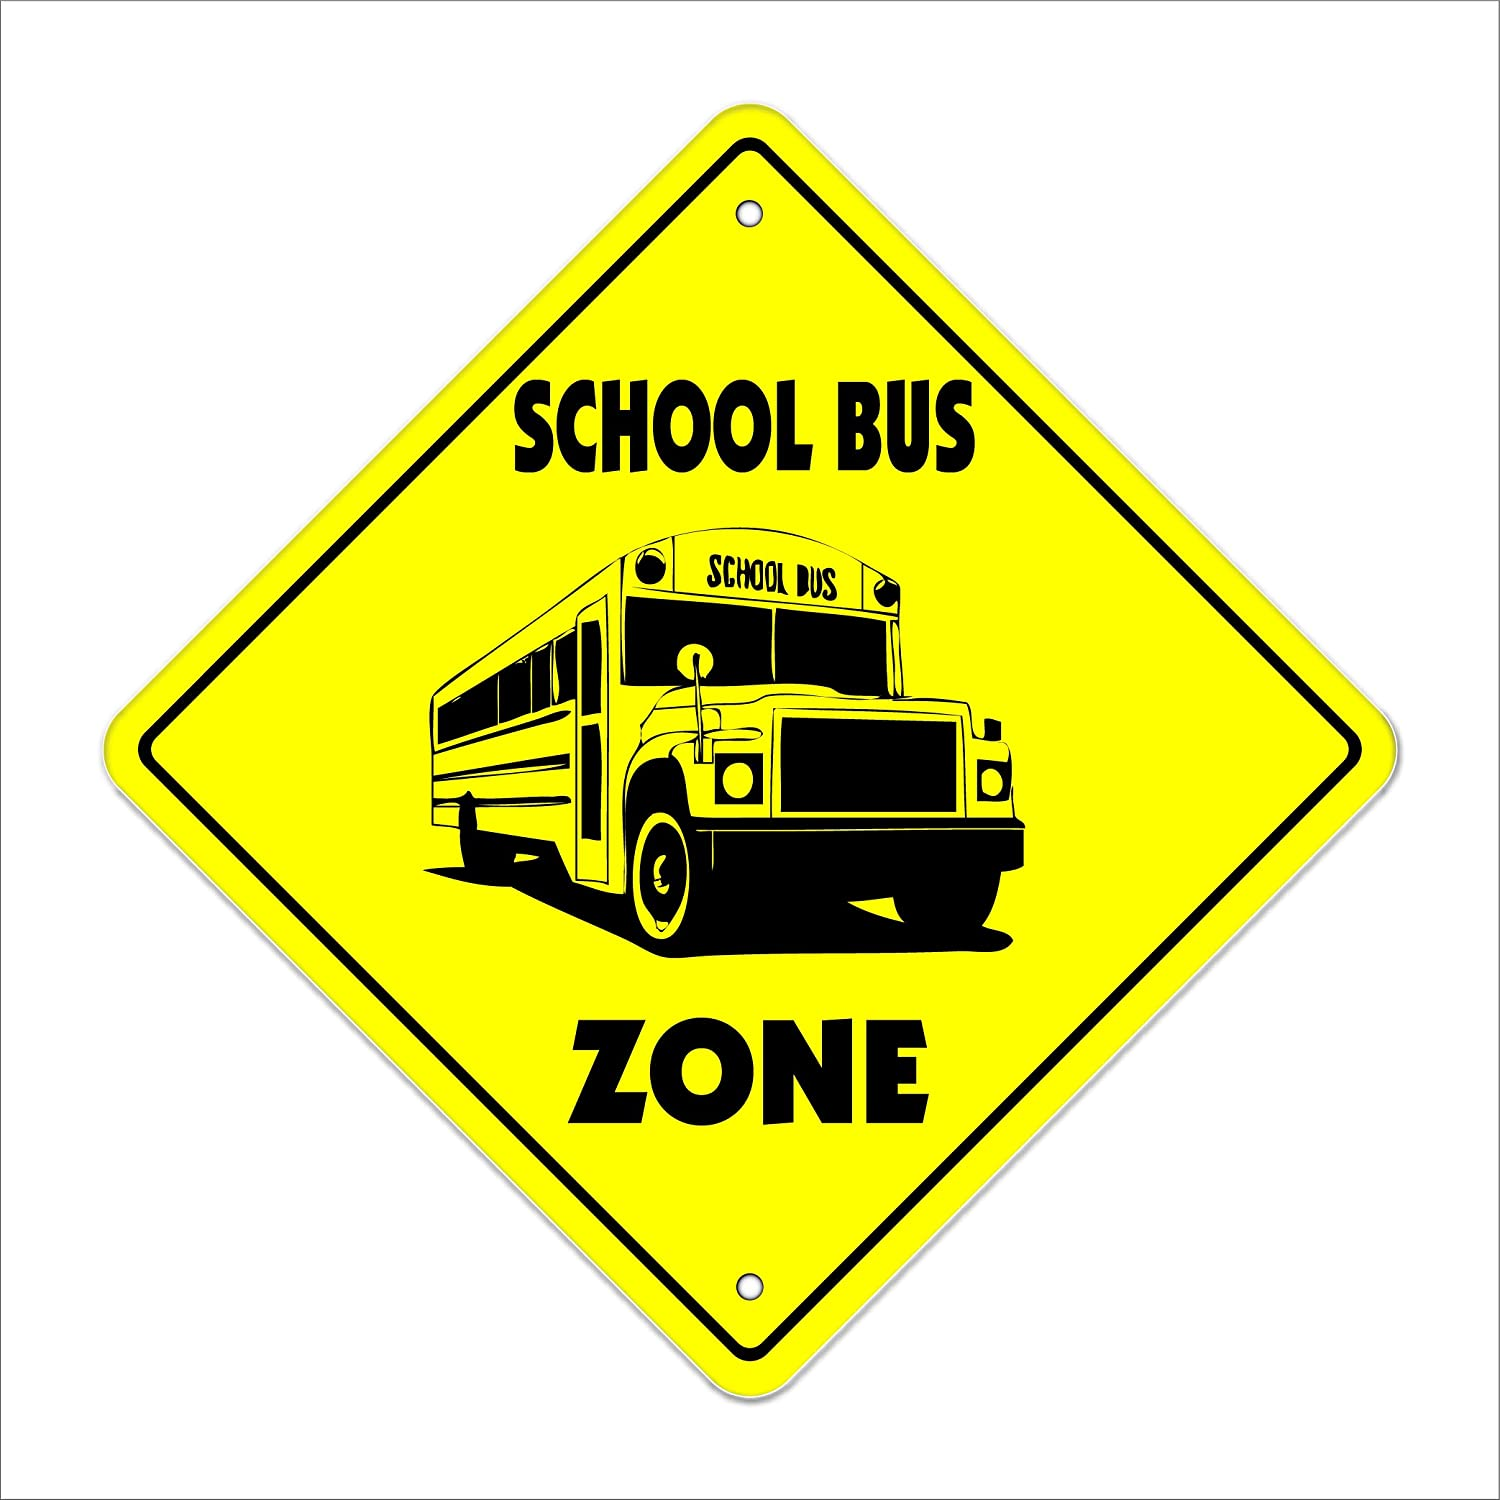 School Low price Bus Crossing Sign Zone Xing P 20